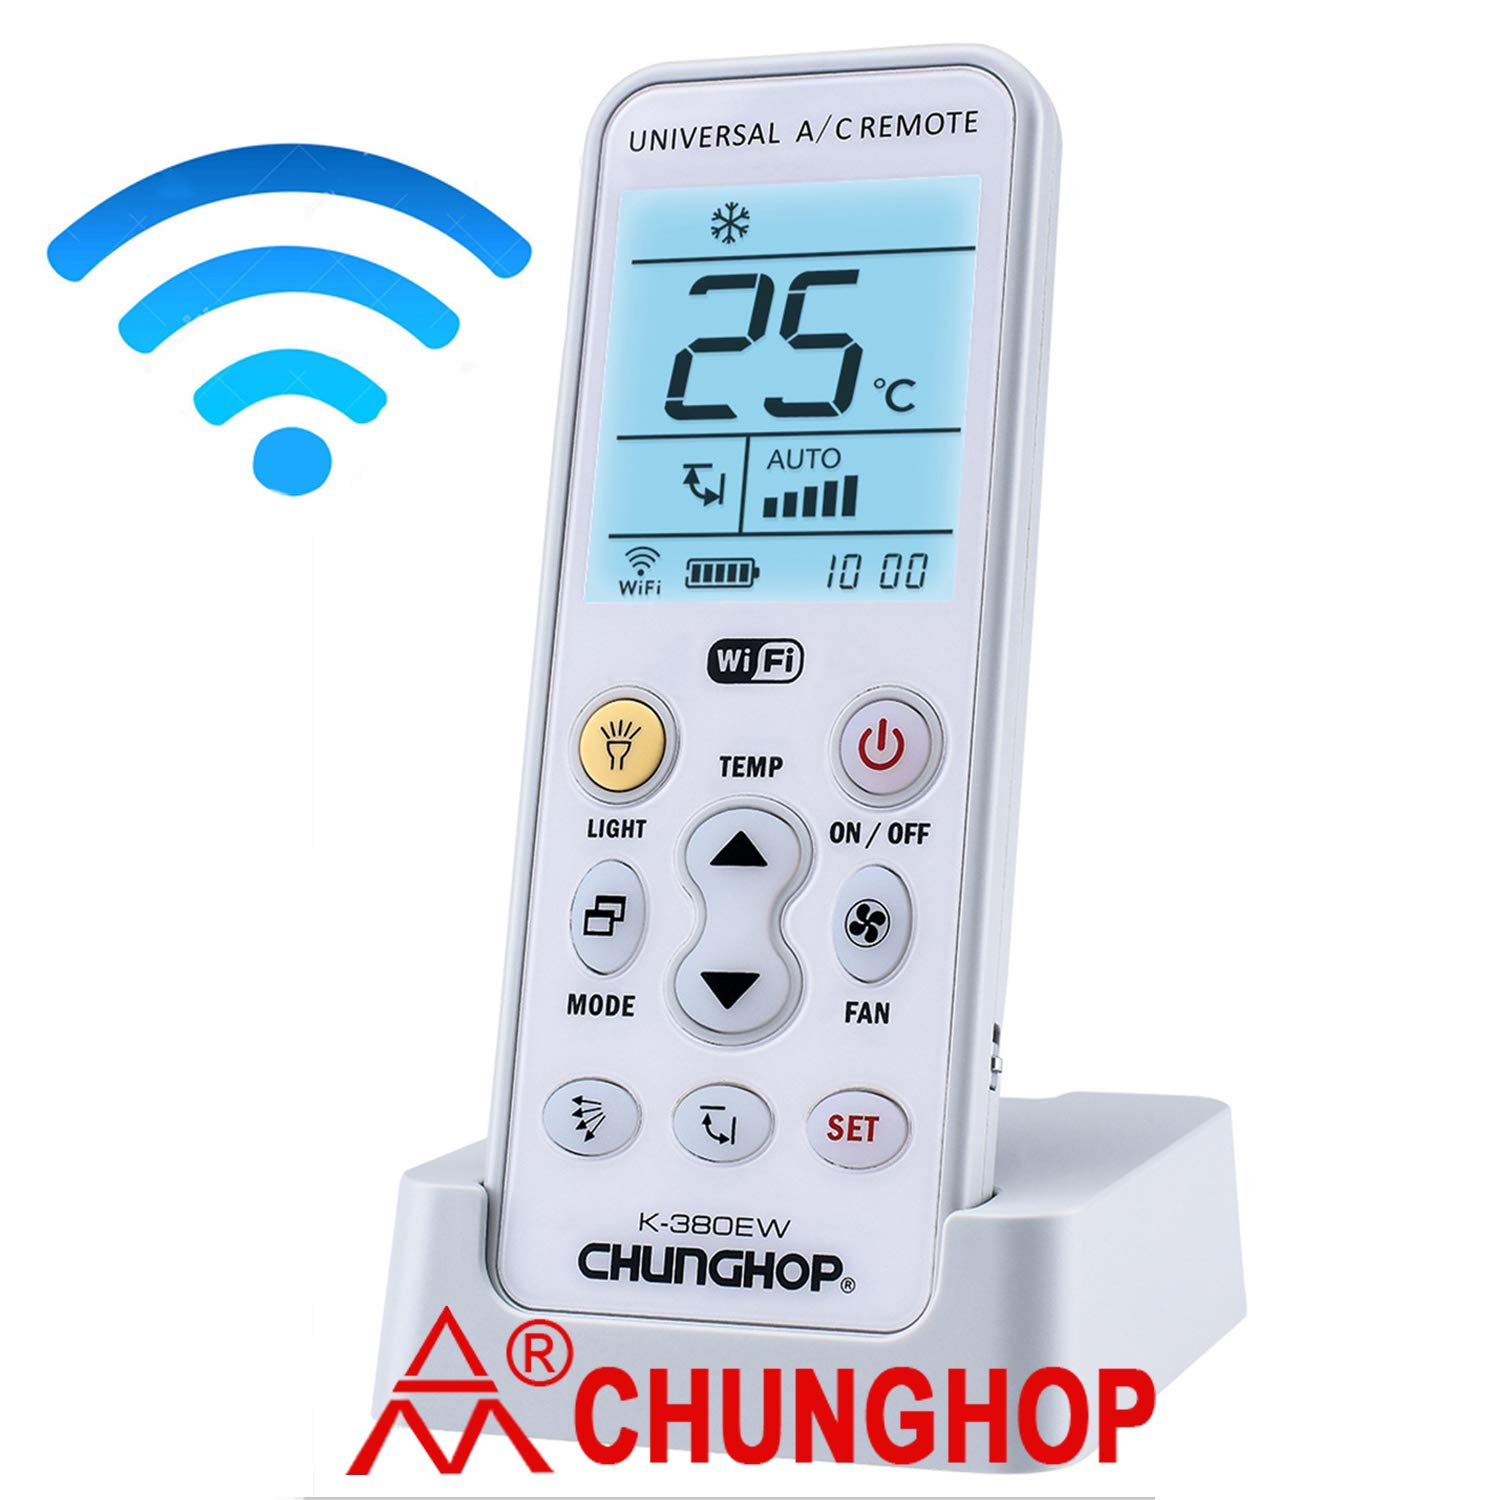 Chunghop WiFi Universal Air Conditioner Remote A/C Controller Air Conditioning Mobile Phone APP Preheating Remote Control K-380EW not for Window A/C